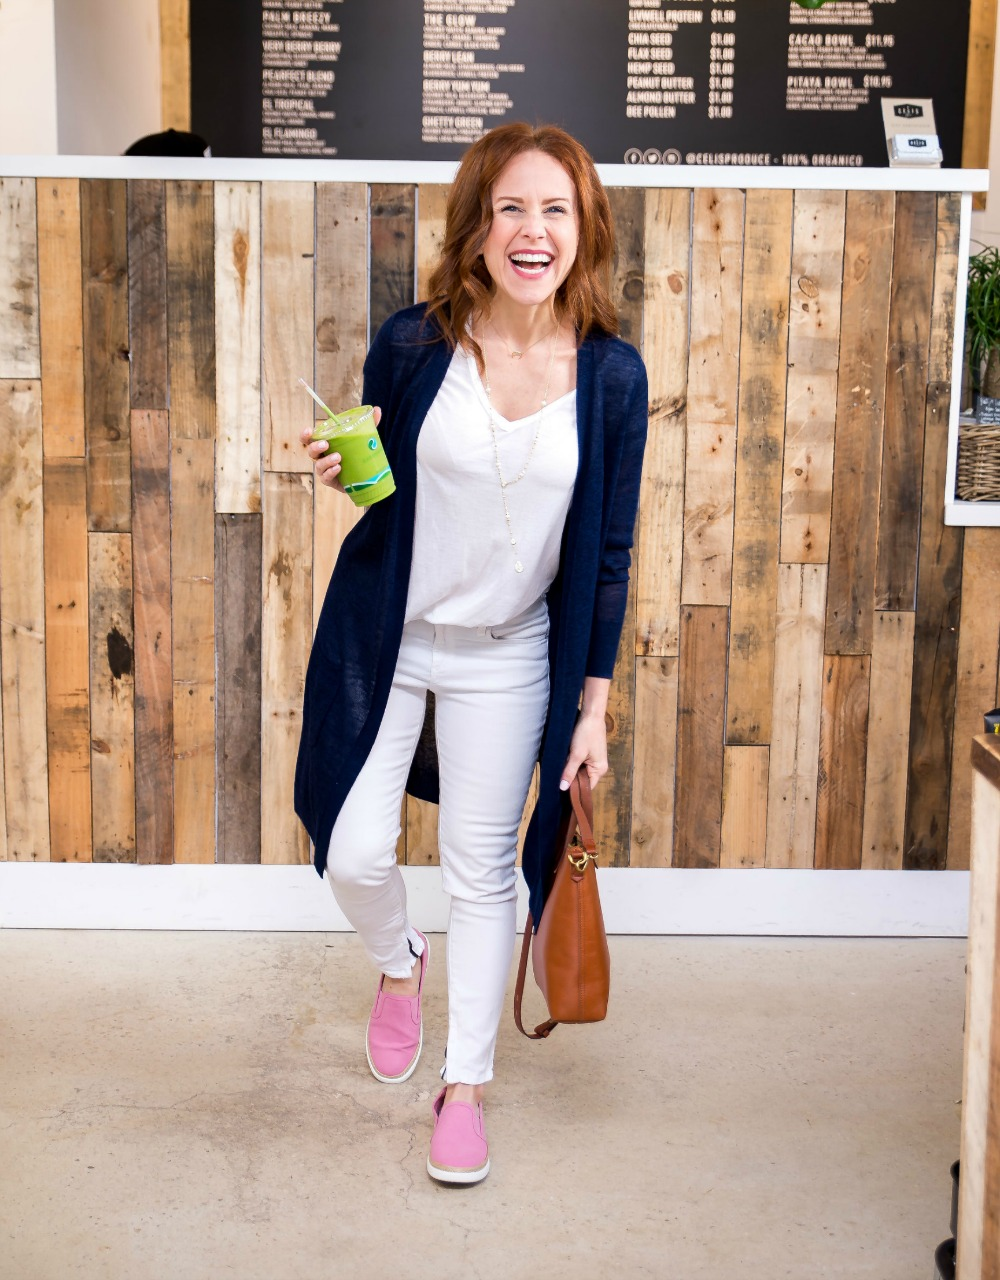 #momlife // Easy mom-on-the-go outfit, from the modern savvy, a life & style blogger in Florida - White Tee and Jeans outfit by popular Florida style blogger The Modern Savvy